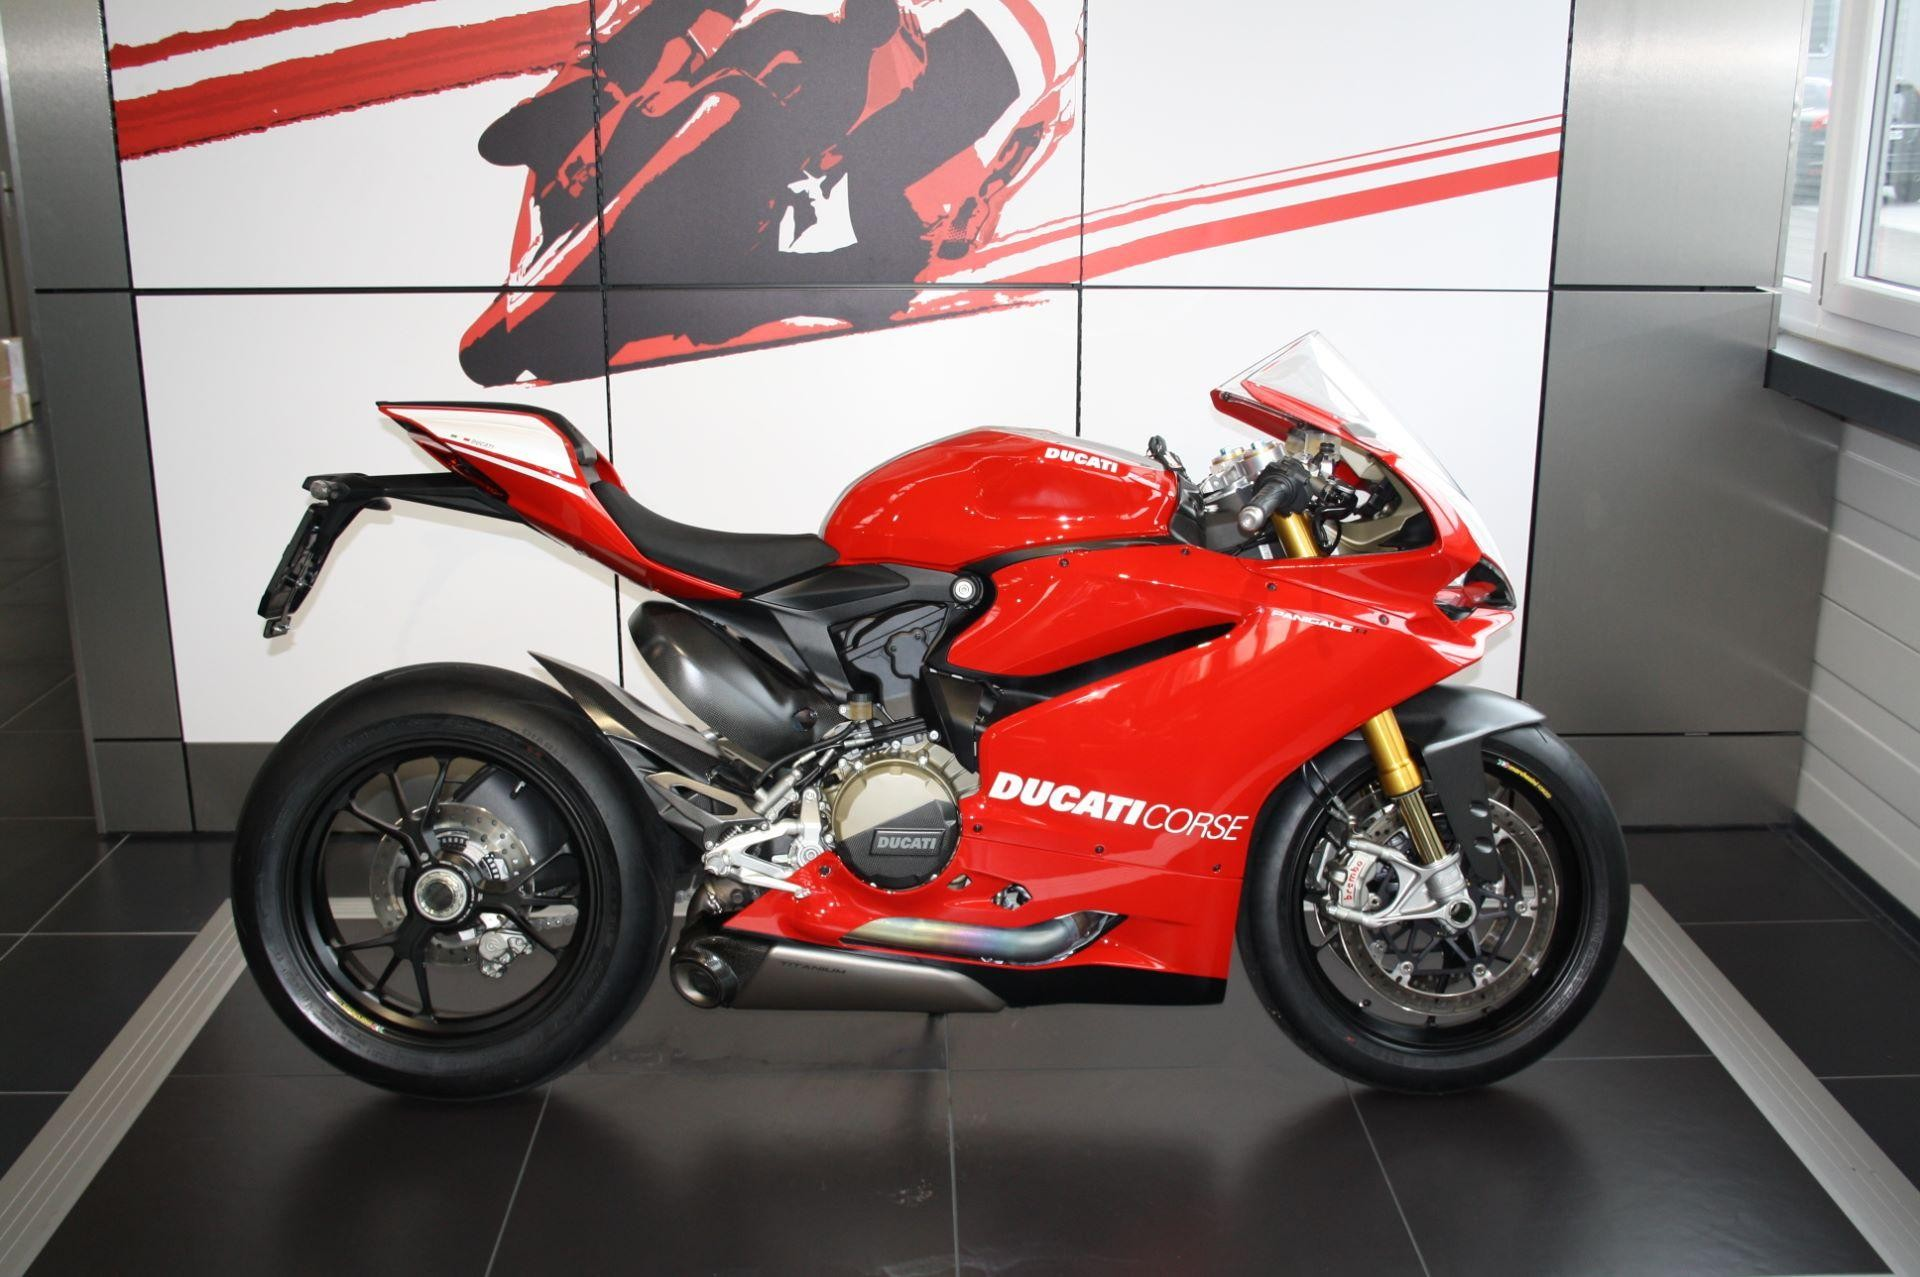 ducati 1199 panigale r abs ducati zentralschweiz perlen. Black Bedroom Furniture Sets. Home Design Ideas